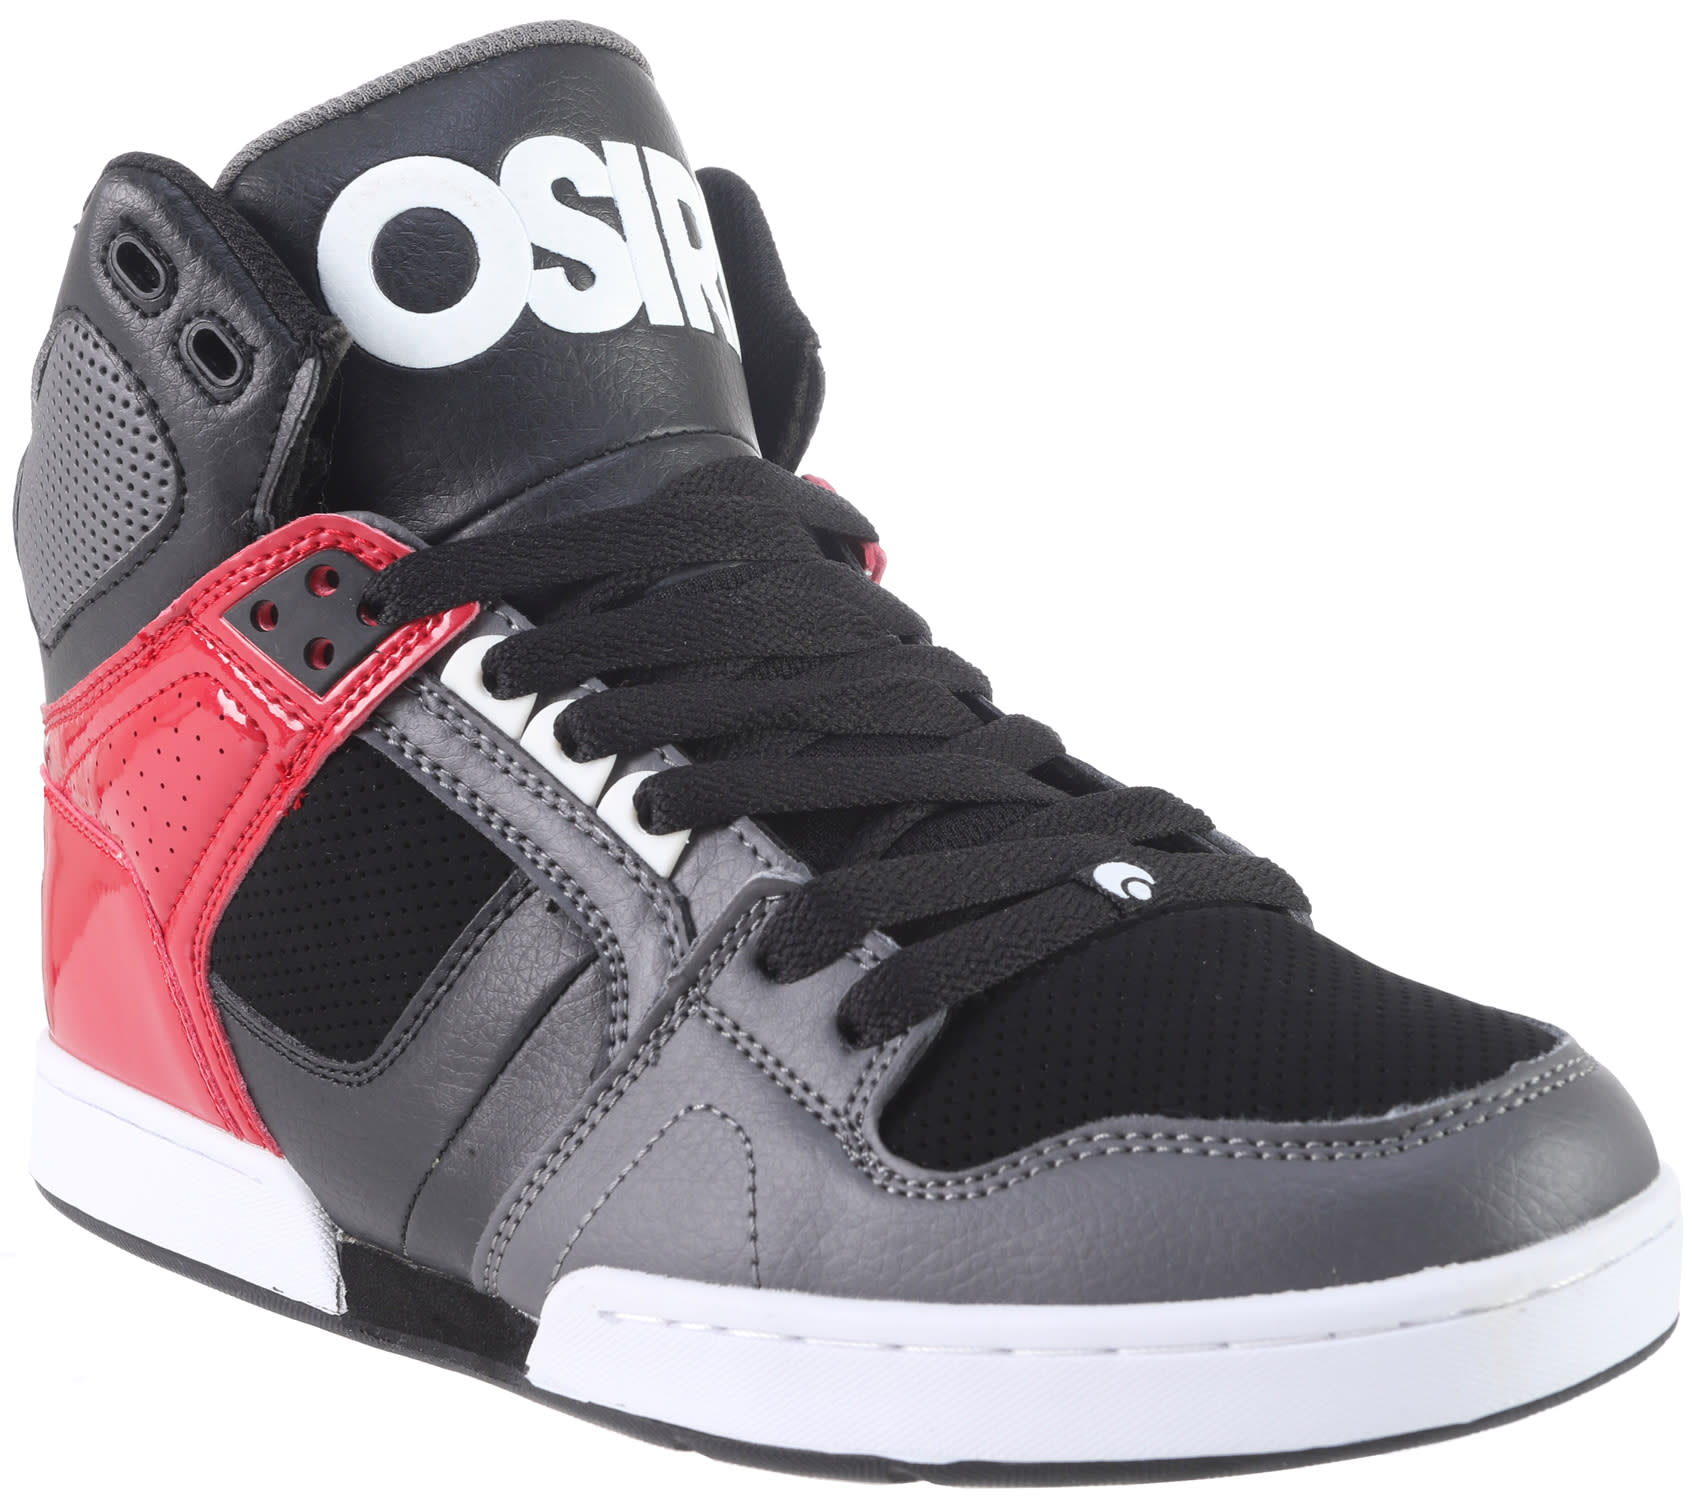 On Sale Osiris Nyc 83 Skate Shoes Up To 45 Off